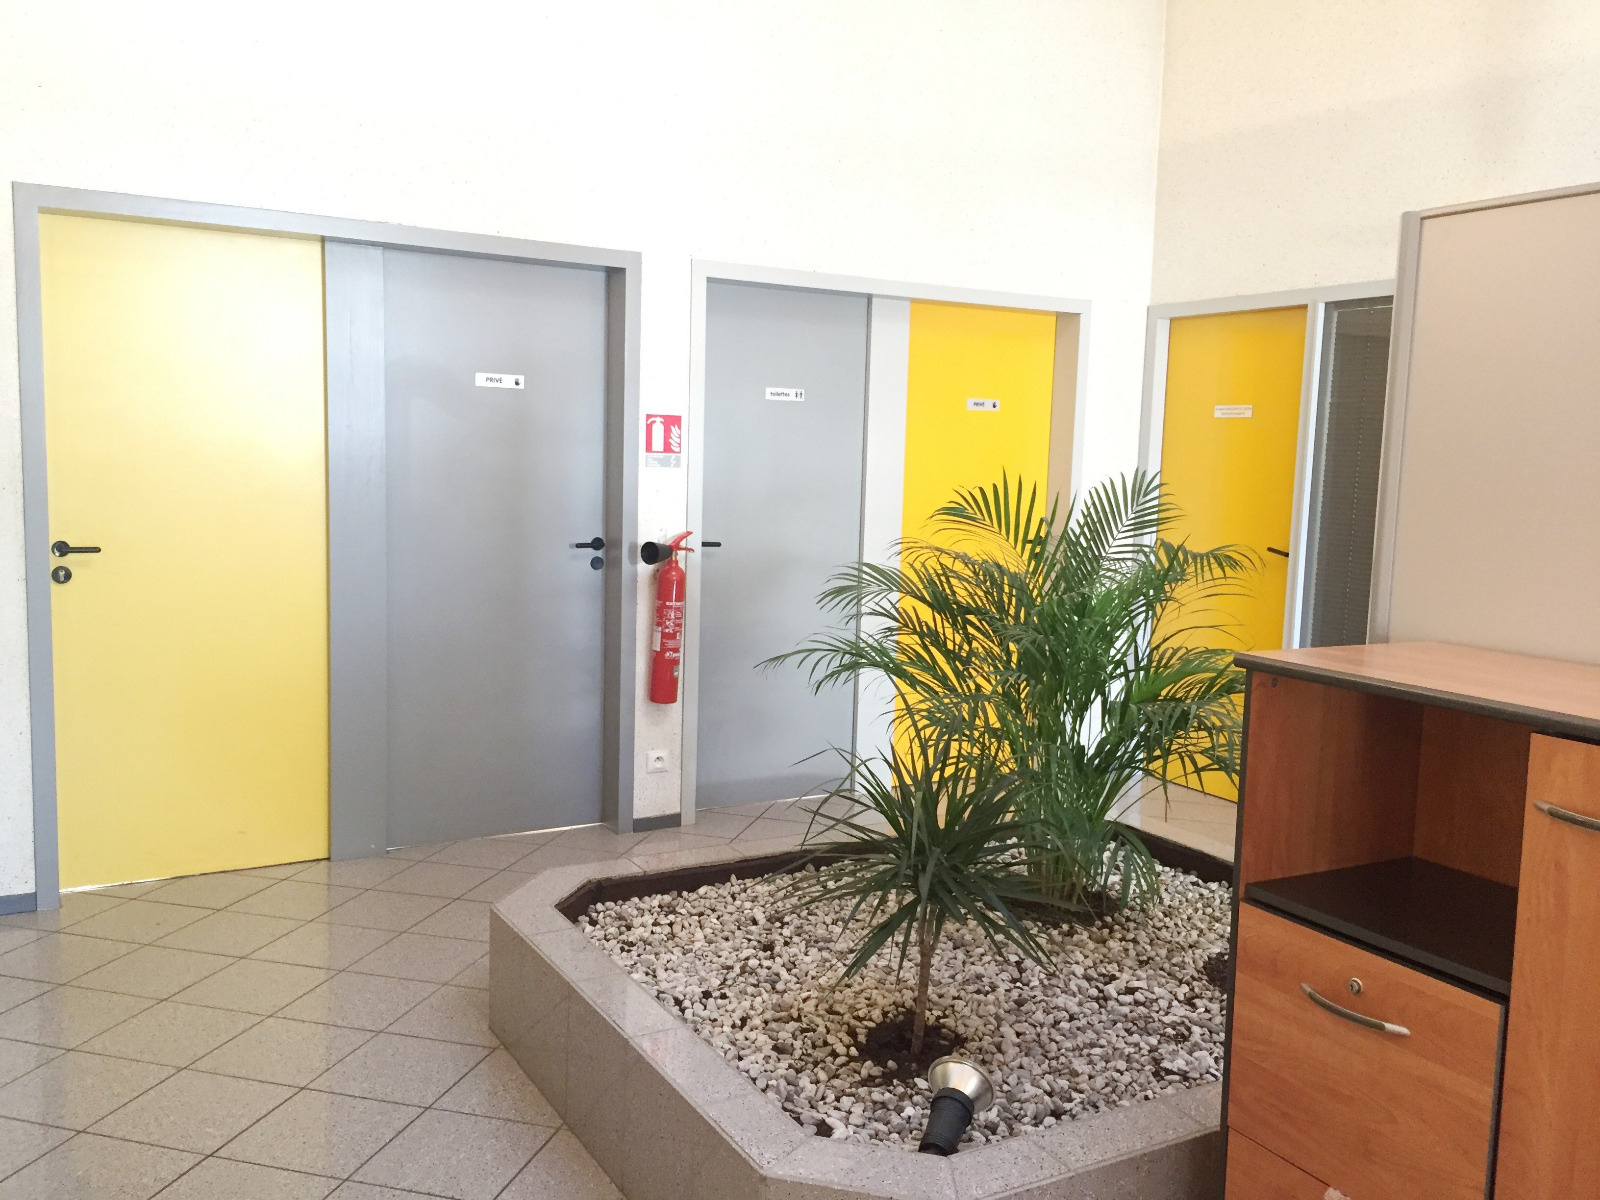 Location Immobilier Professionnel Local professionnel Andernos-les-Bains (33510)